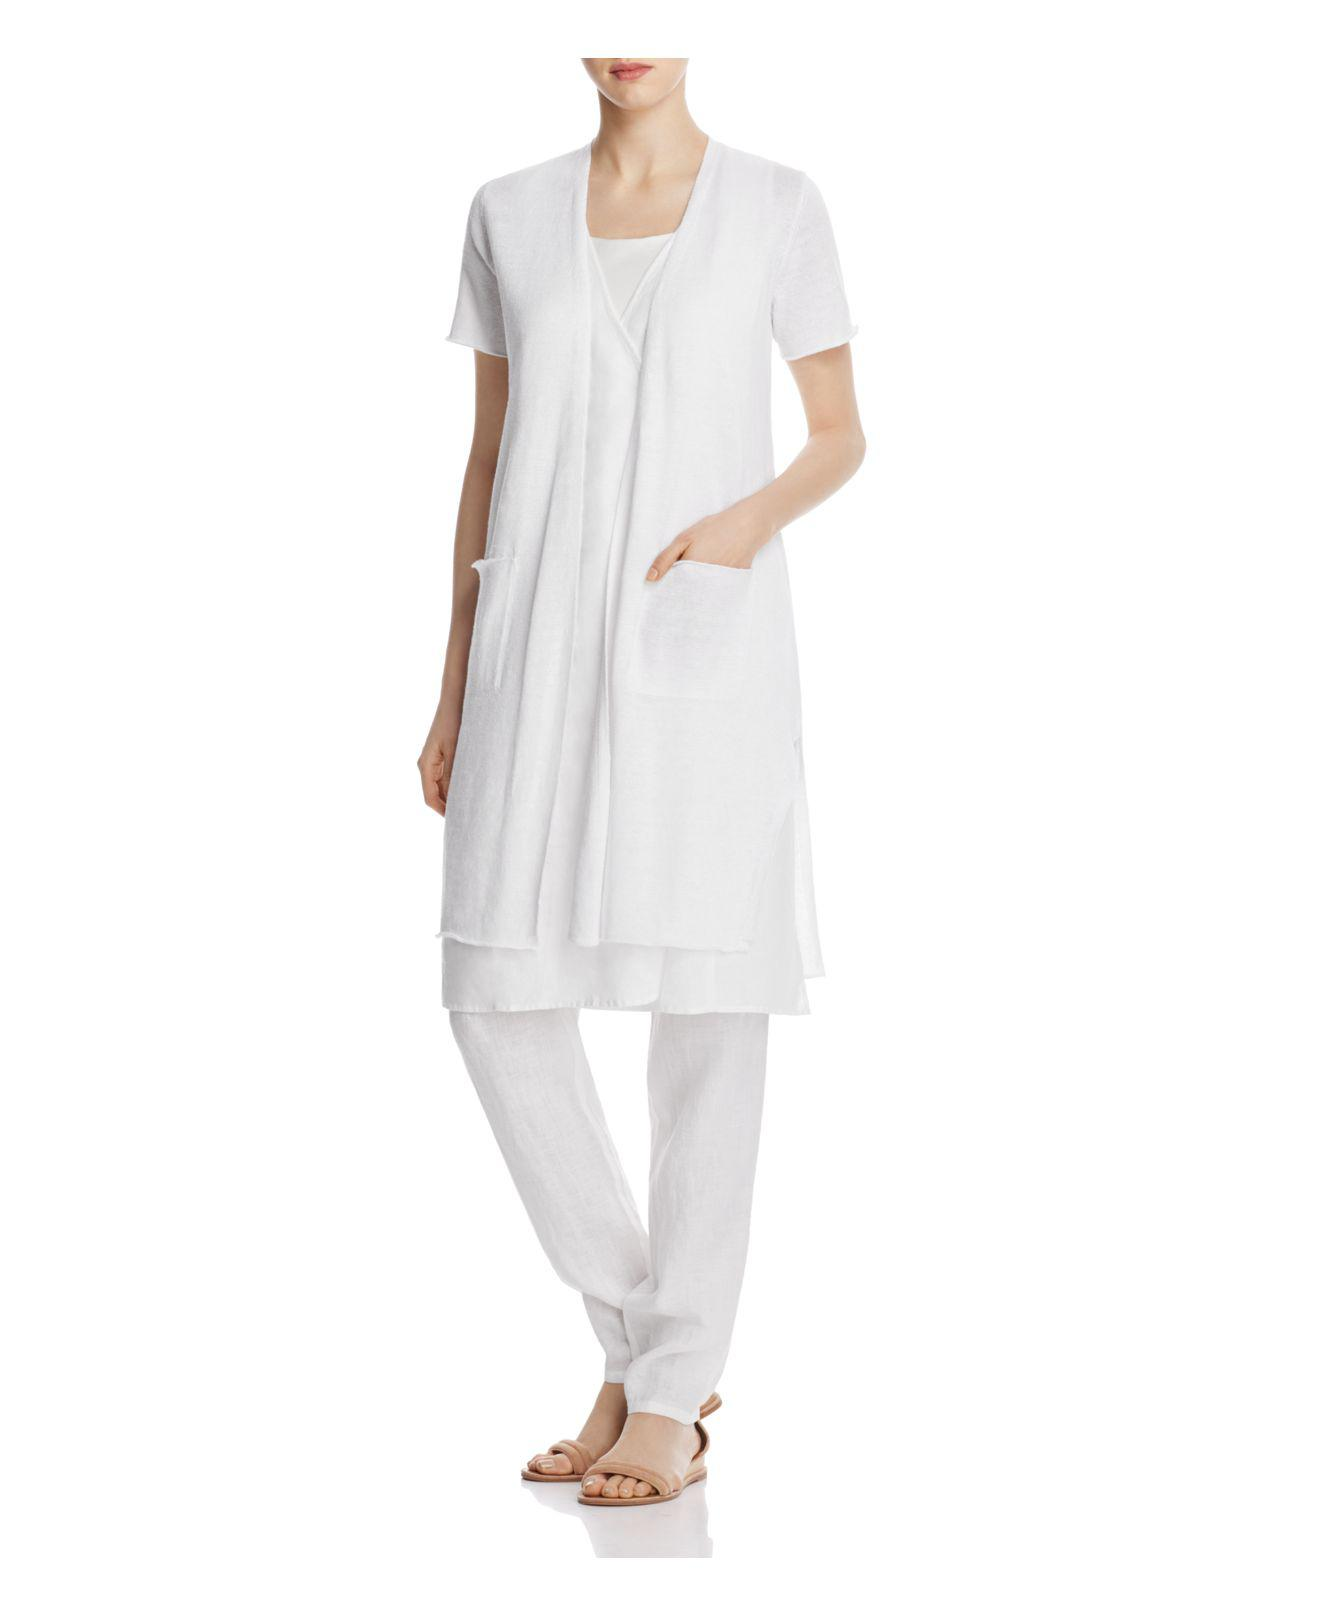 Eileen fisher Short Sleeve Long Cardigan in White | Lyst